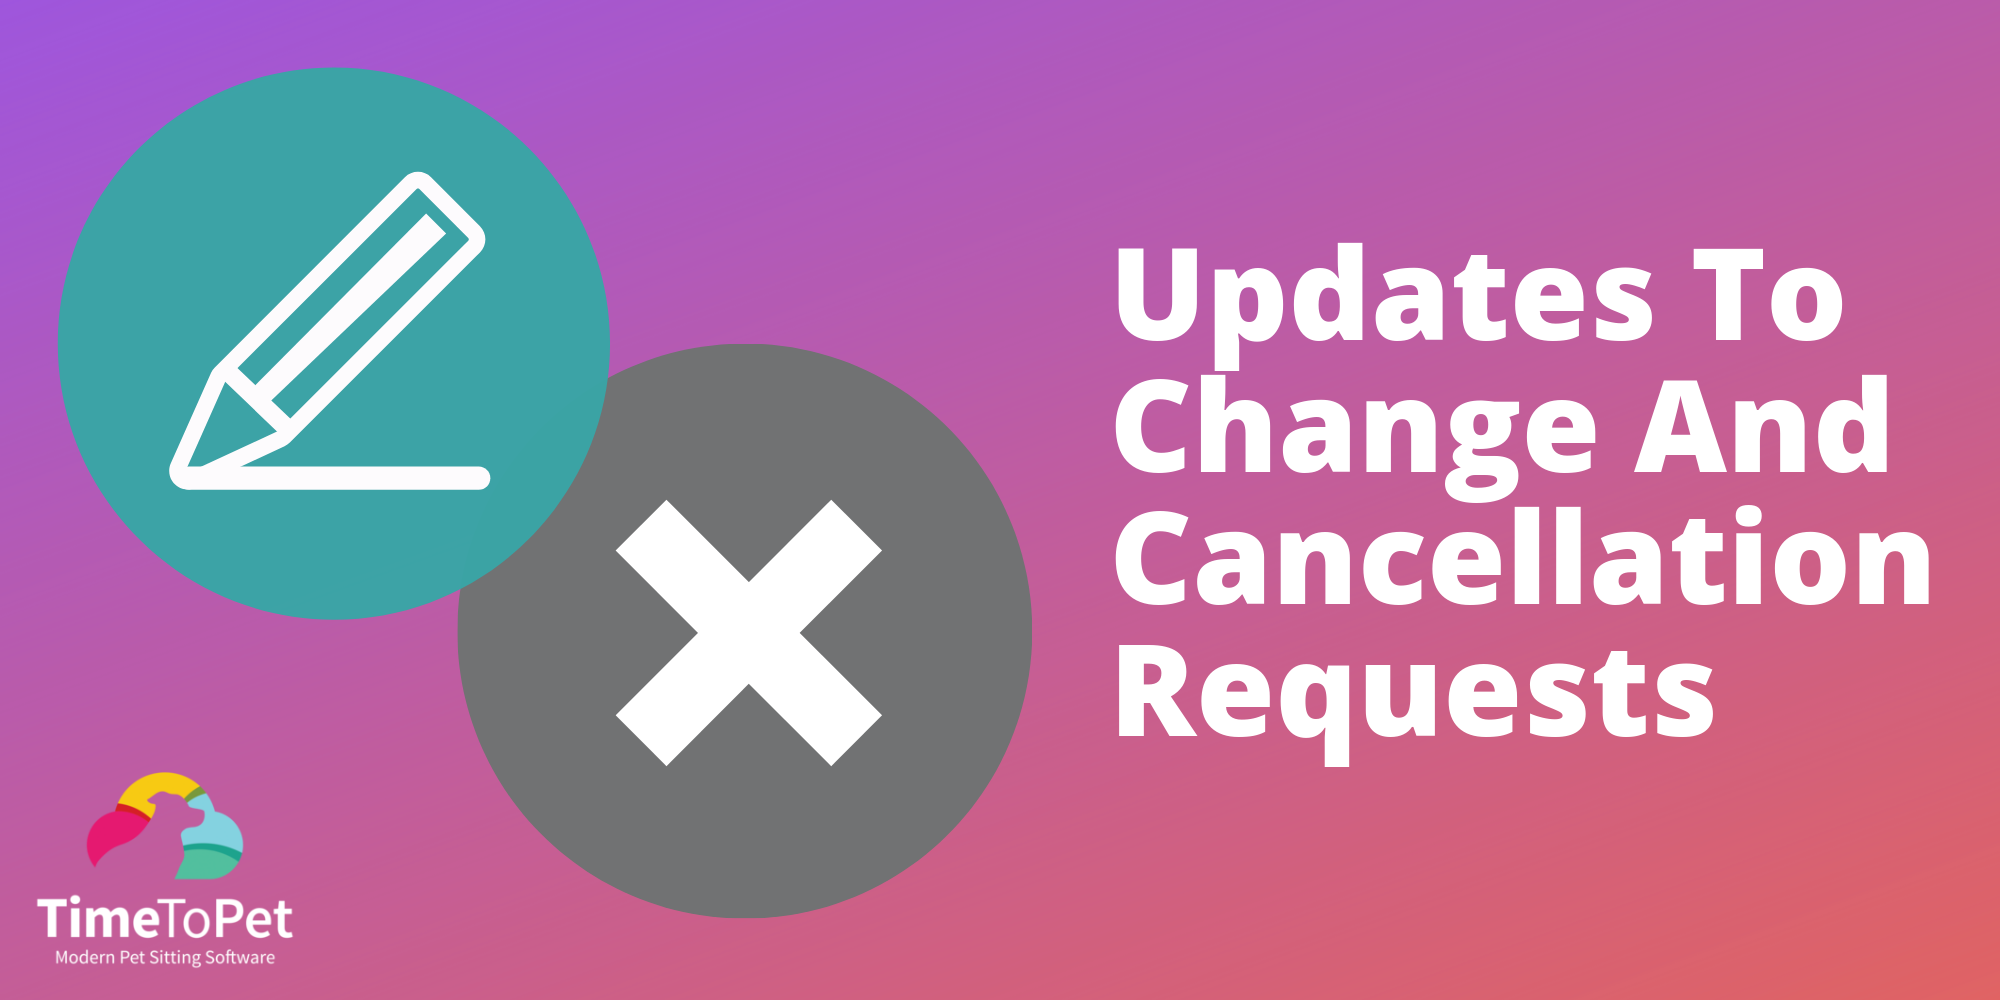 updates-to-change-and-cancellation-requests.png